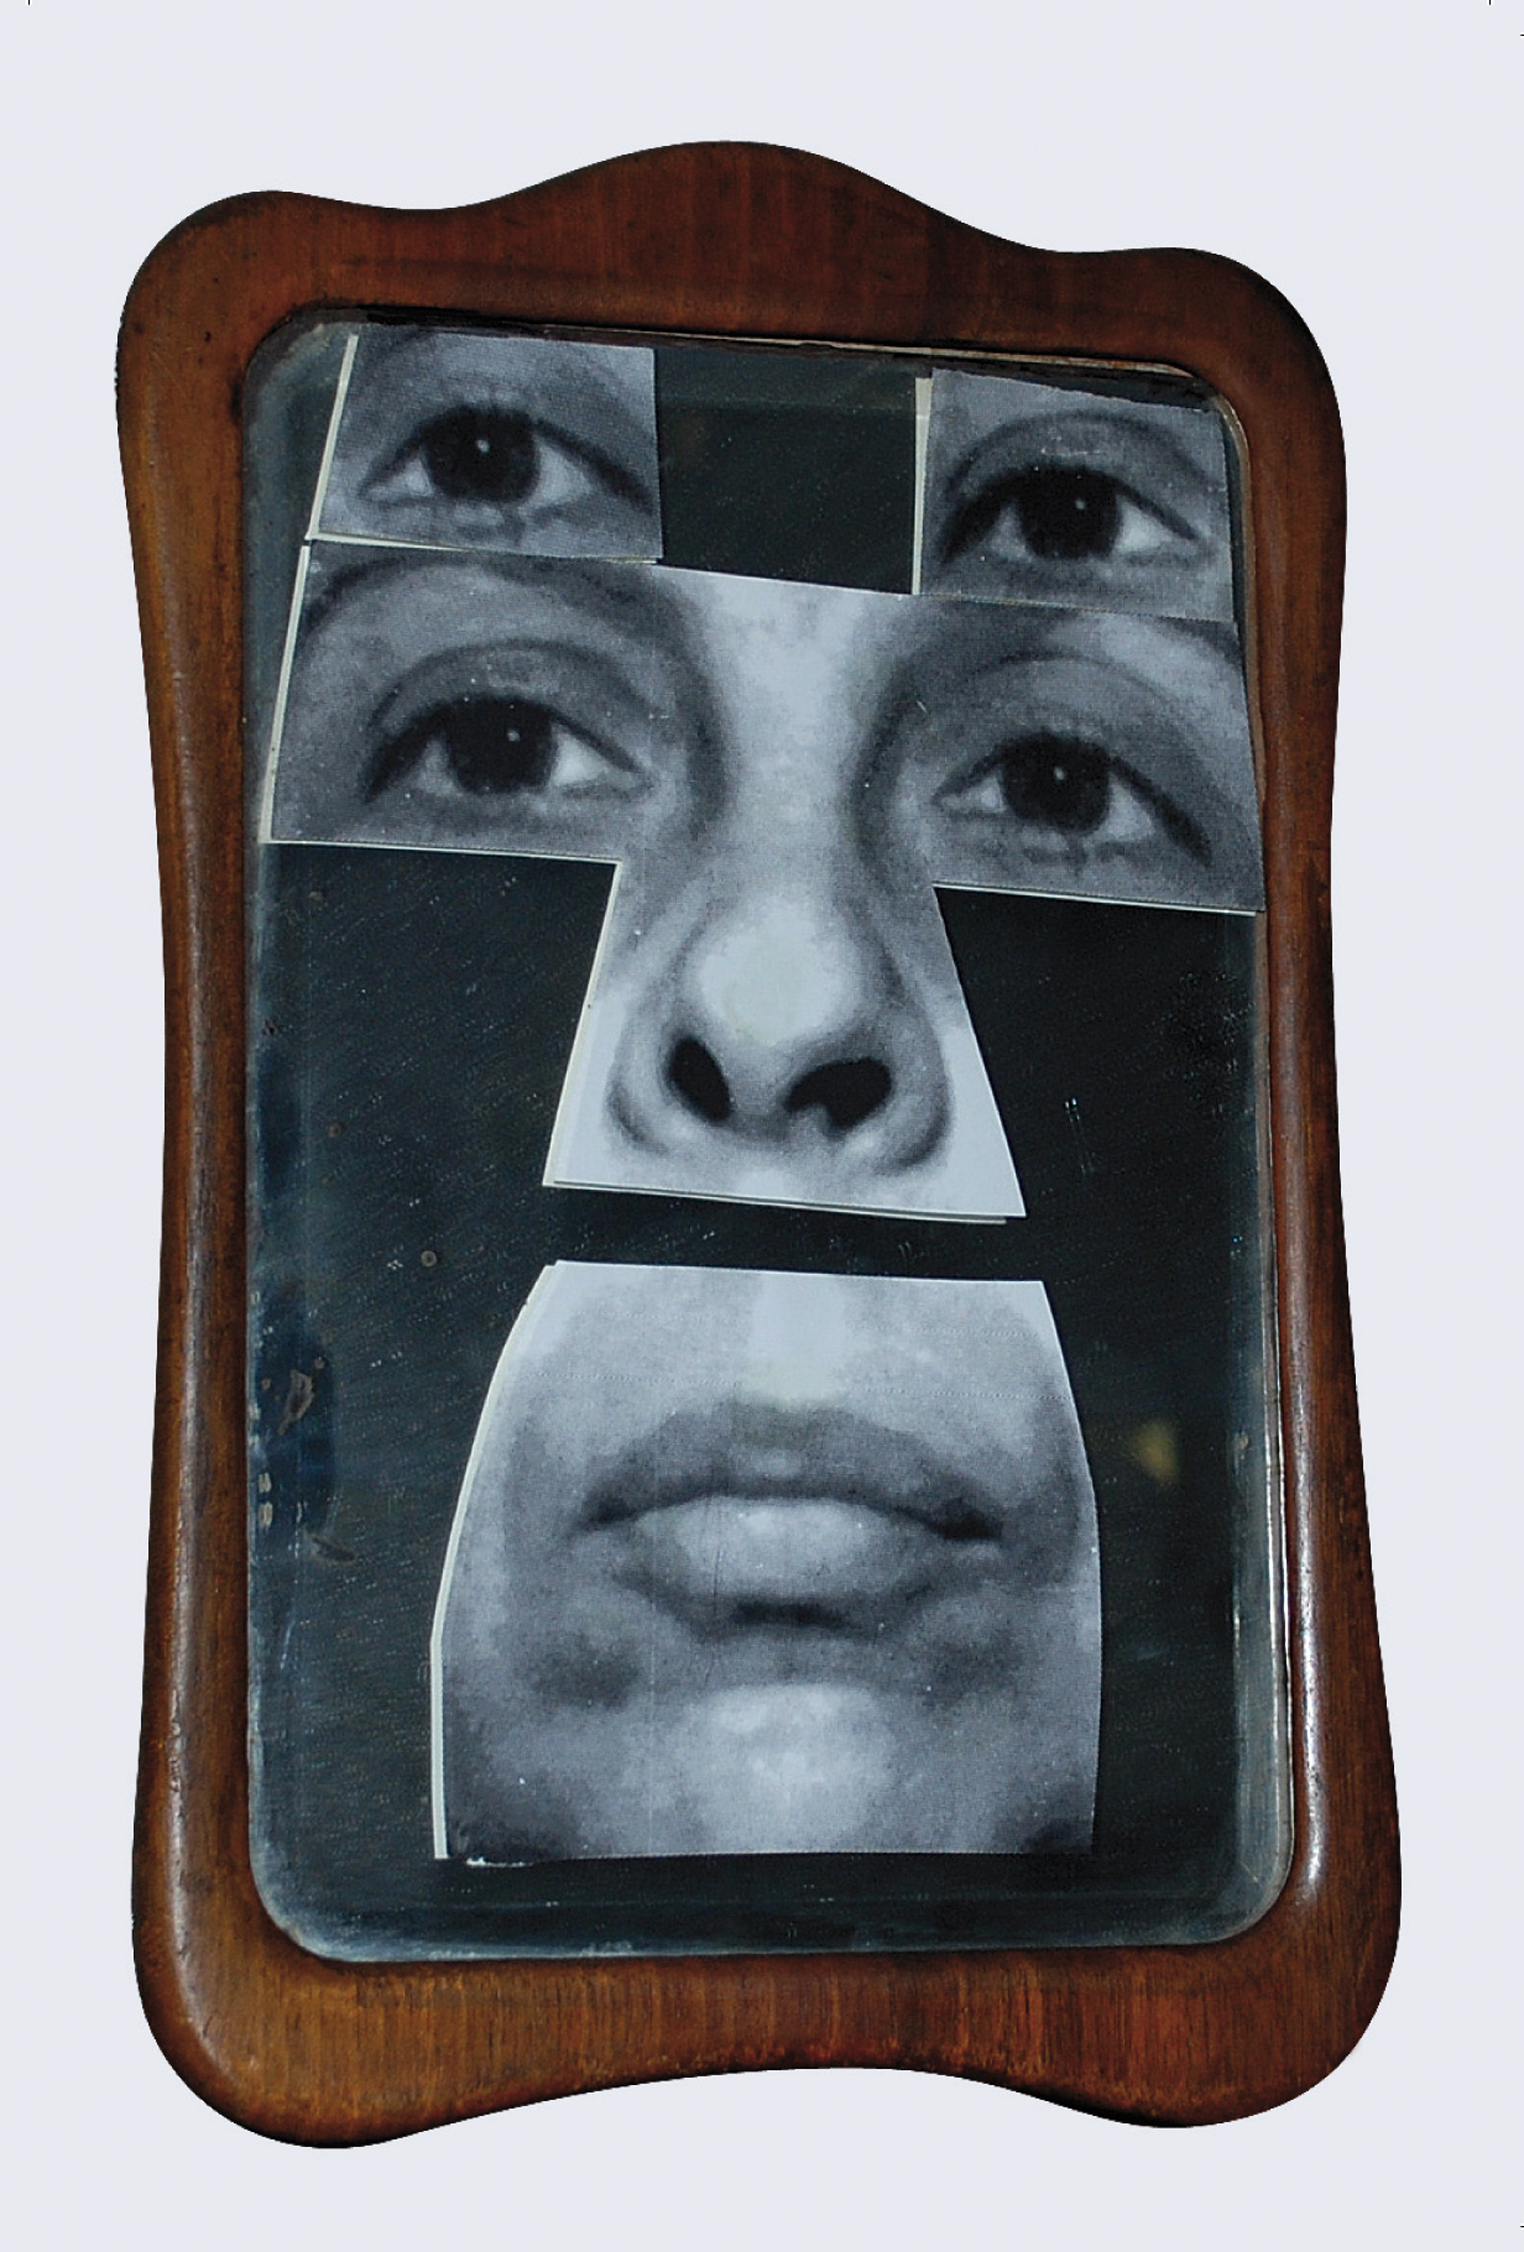 "Geta Brătescu, Autoportret în oglindă [Self-Portrait in the Mirror], 2001. Mirror, wood, gelatin silver prints, 8 1/4 x 5 7/8"" (21  x  15  cm). © Geta  Brătescu, Courtesy the  artist; Ivan  Gallery, Bucharest; Hauser & Wirth. Photo: Ștefan  Sava."